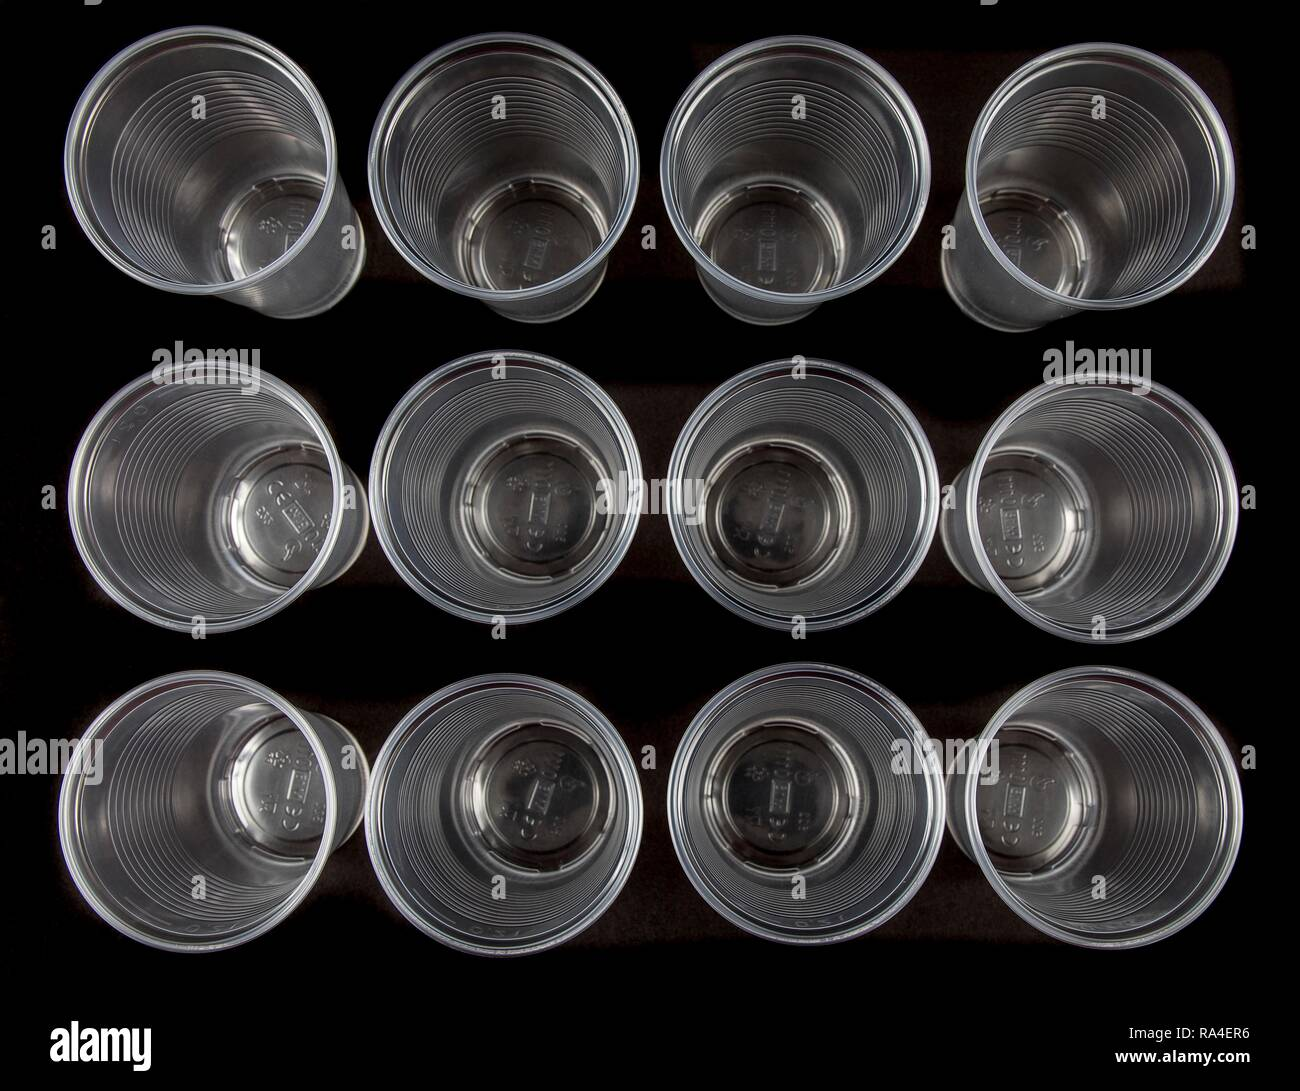 Disposable cups, plastic cups, transparent, 0, 2 litres, drinking cups, disposable cups, plastic waste Stock Photo